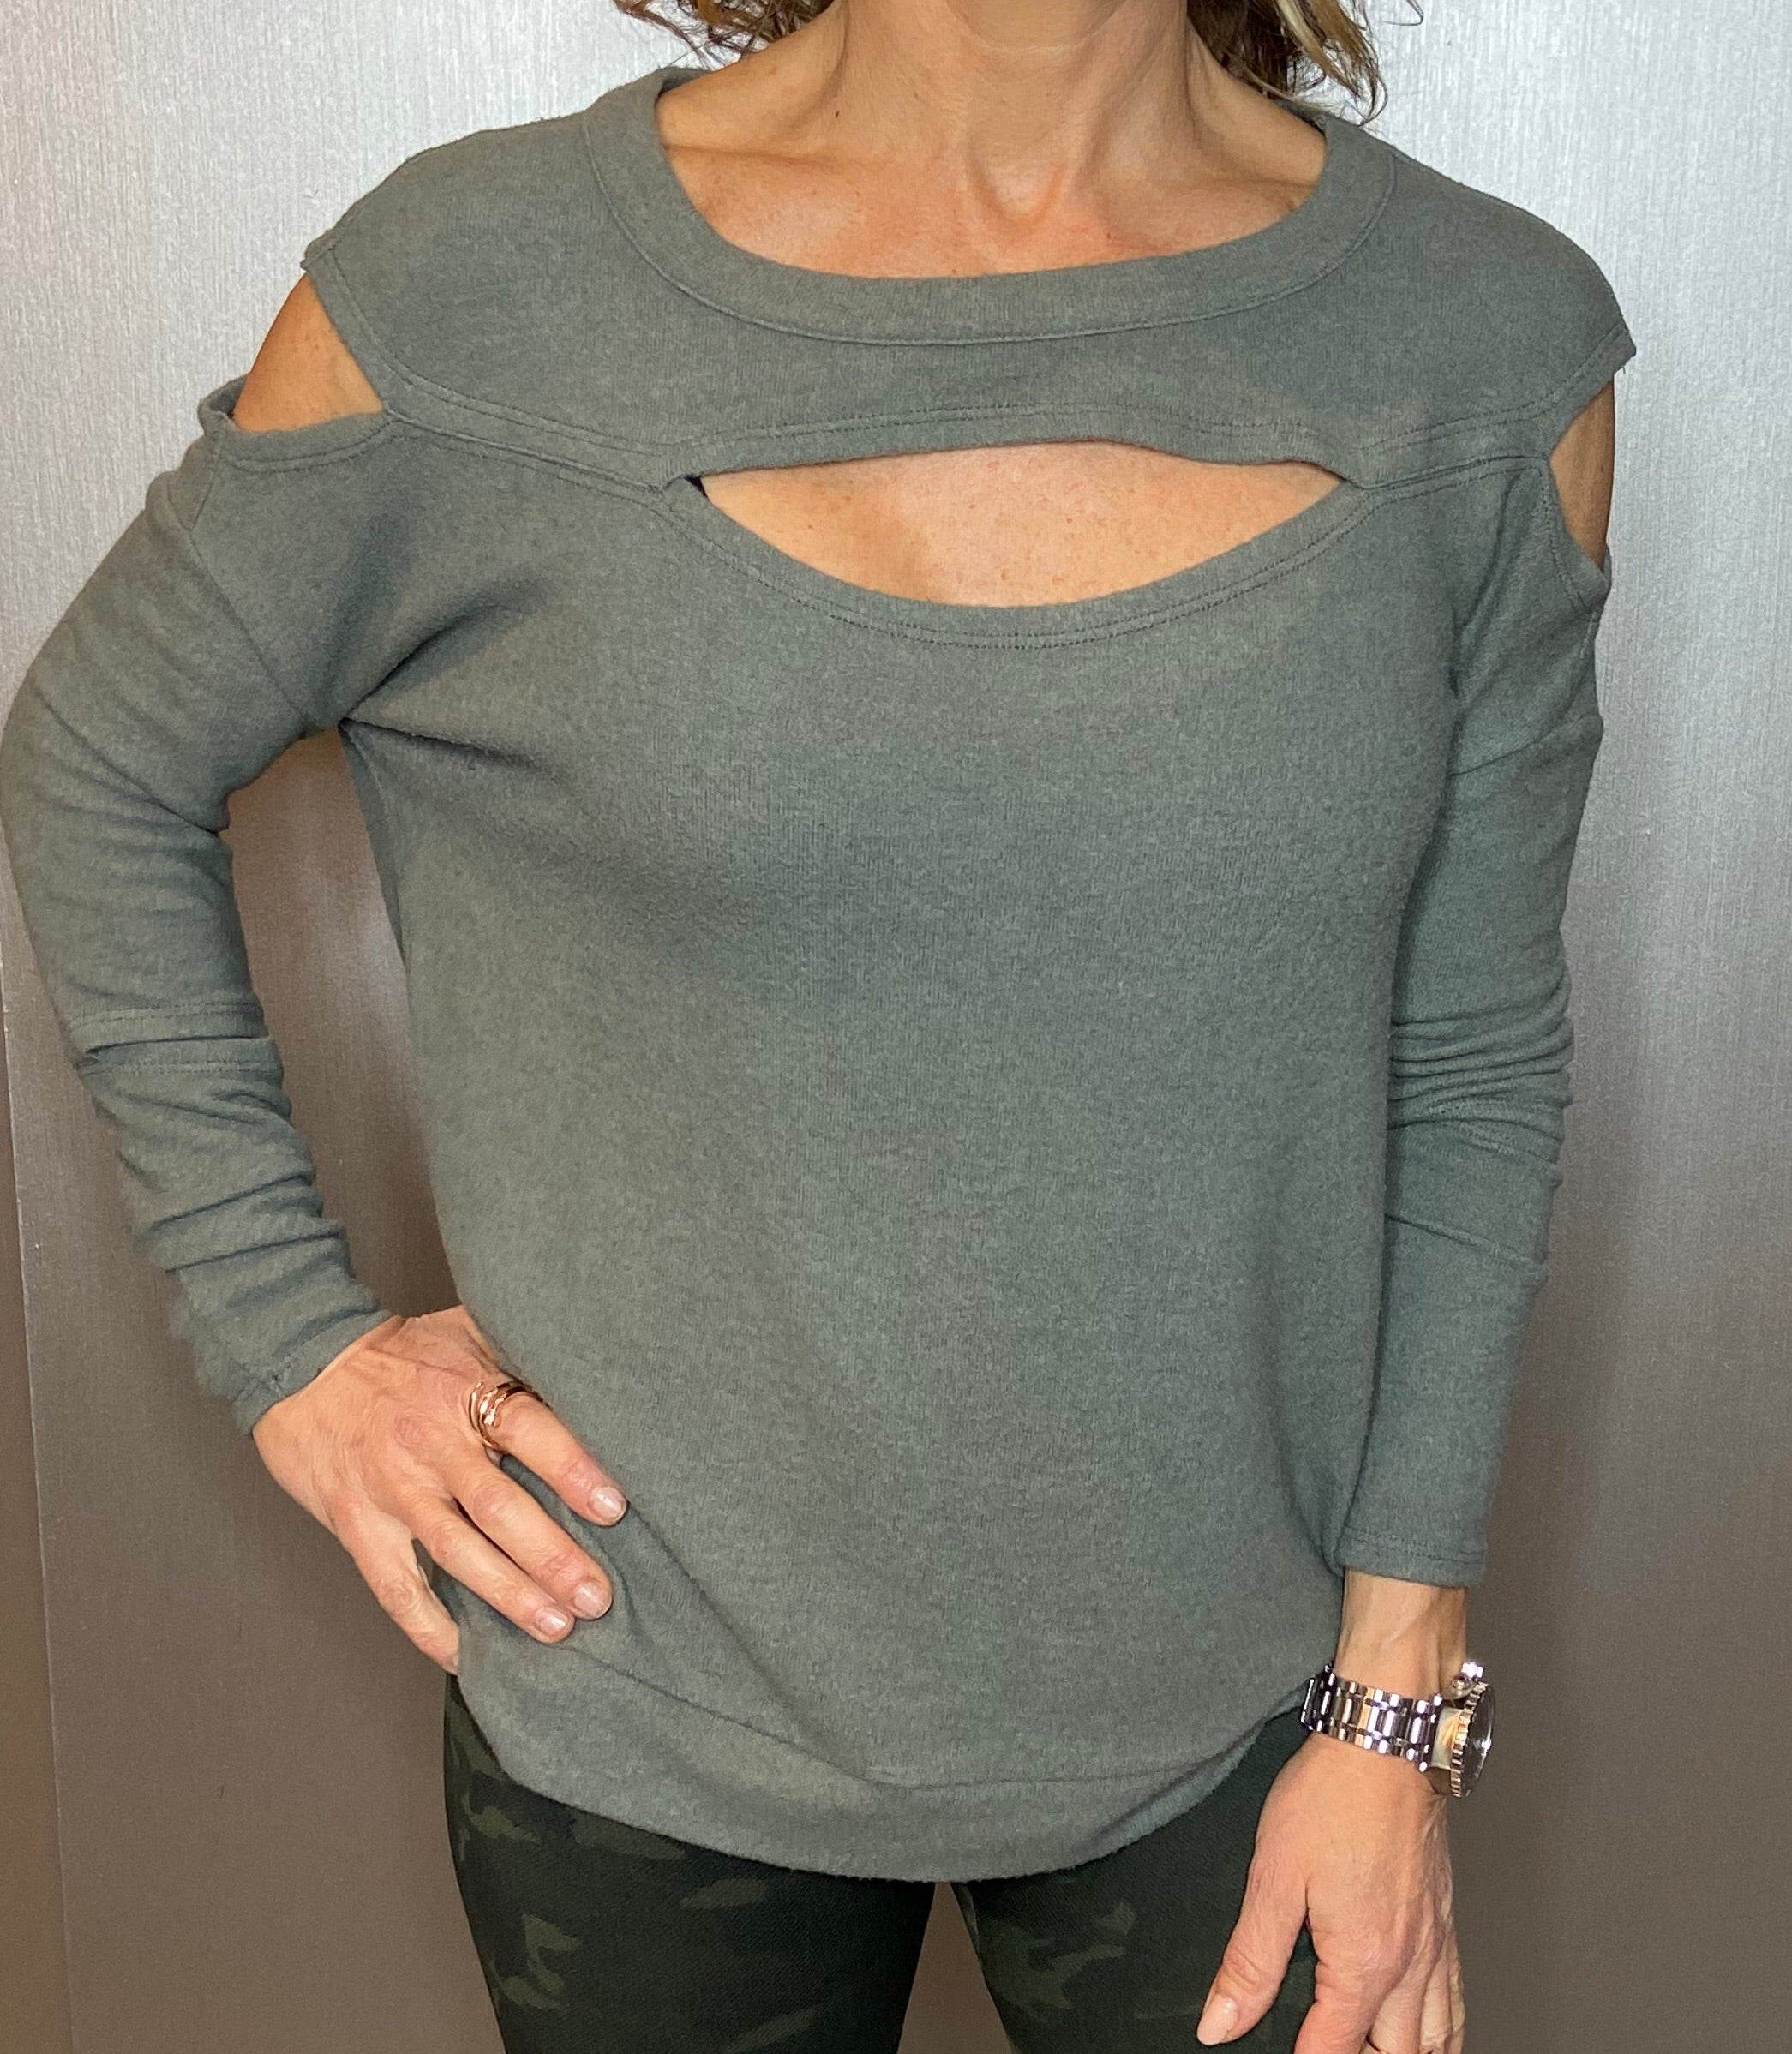 Cutout love knit top